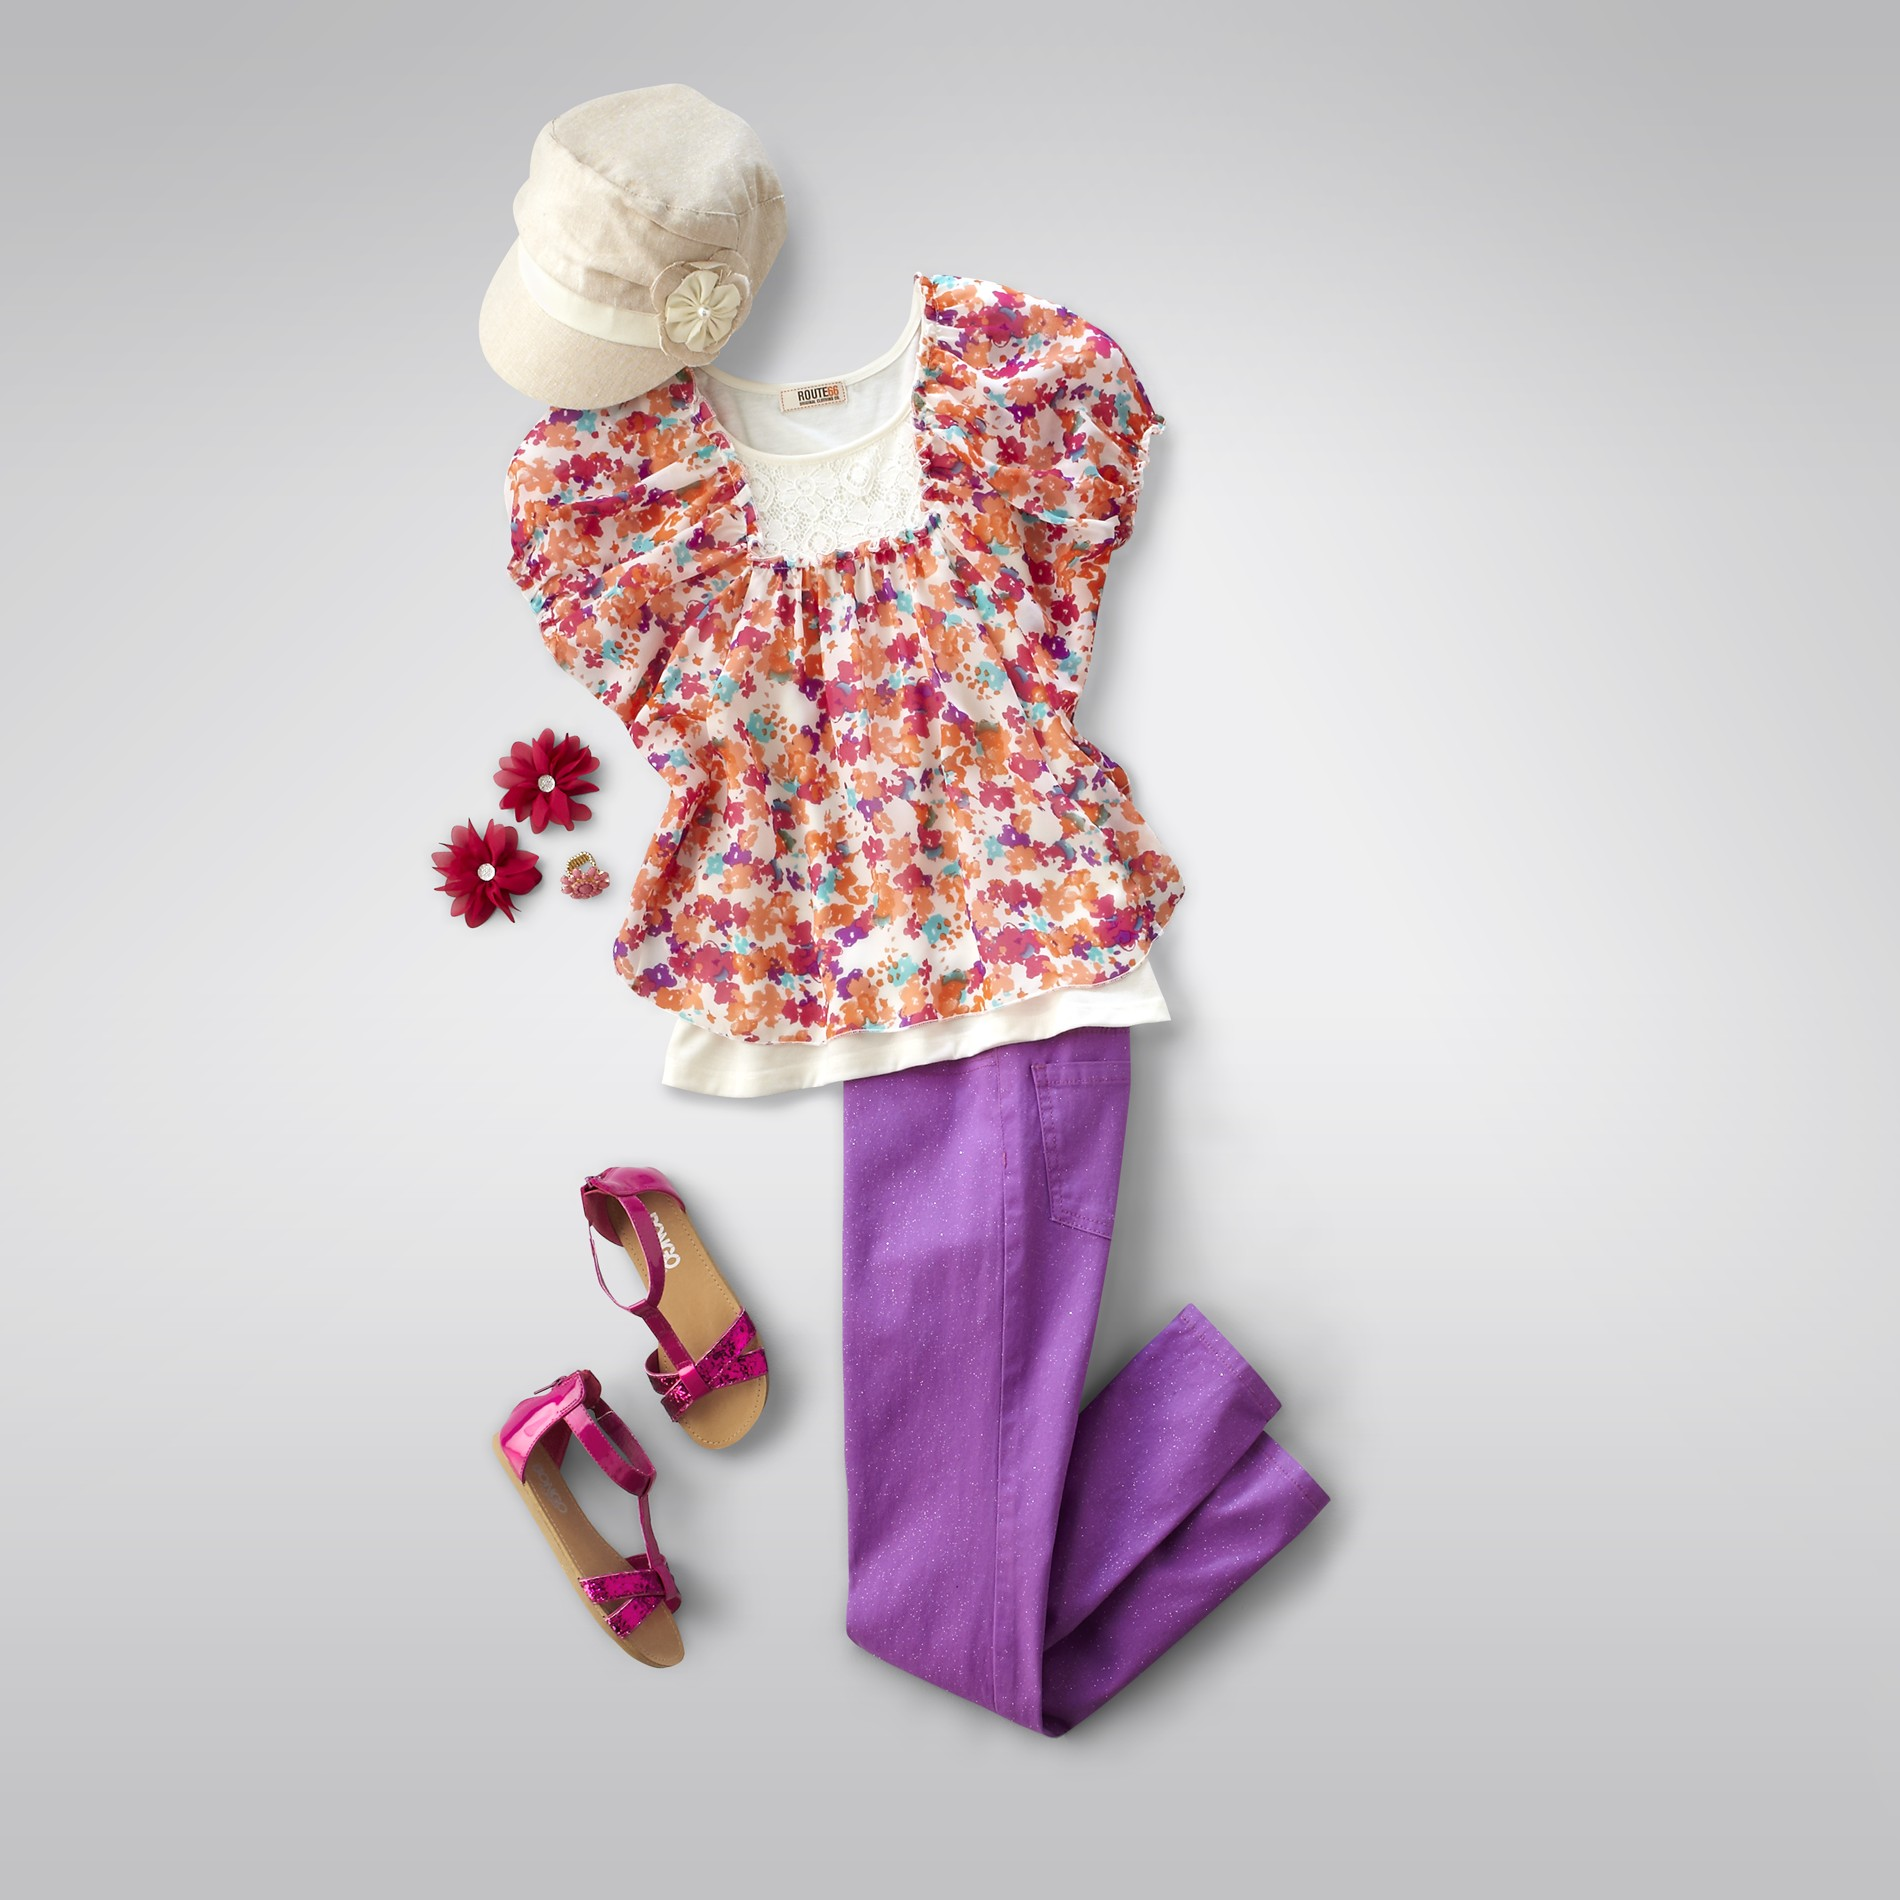 Blooming Beauty Outfit at Kmart.com